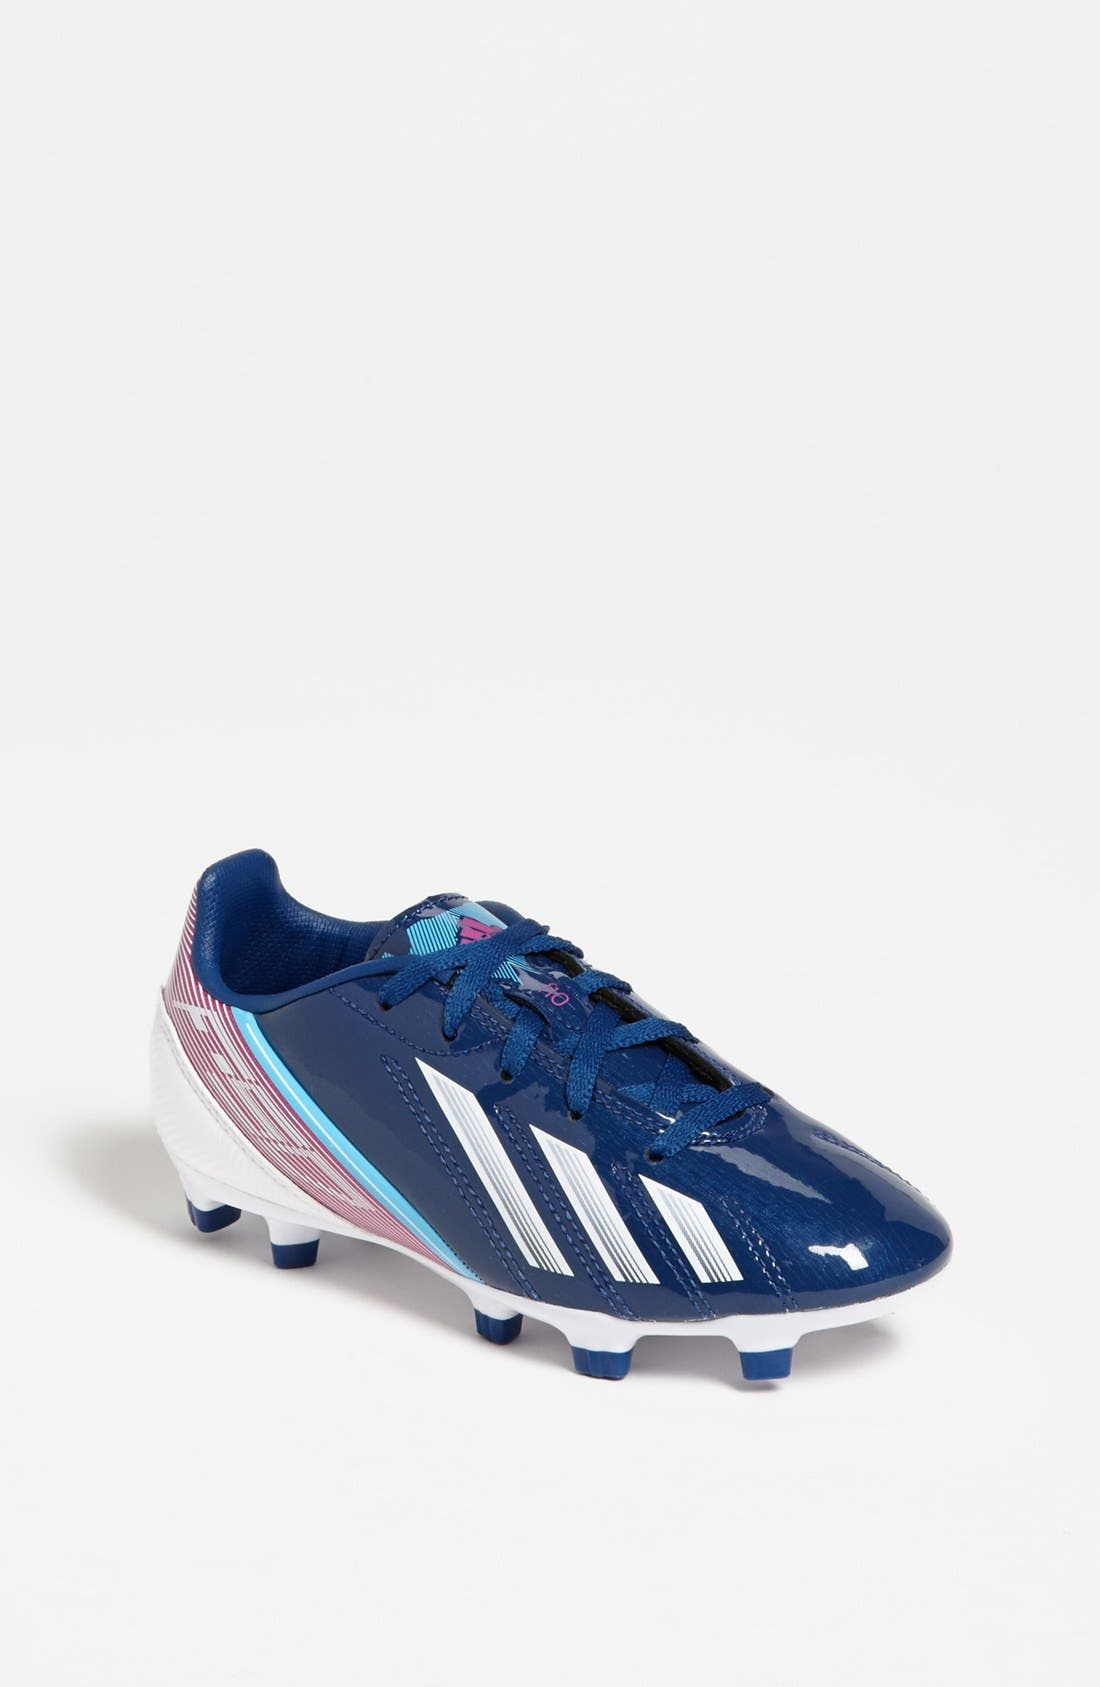 Alternate Image 1 Selected - adidas 'F10 TRX FG' Soccer Cleats (Toddler, Little Kid & Big Kid)